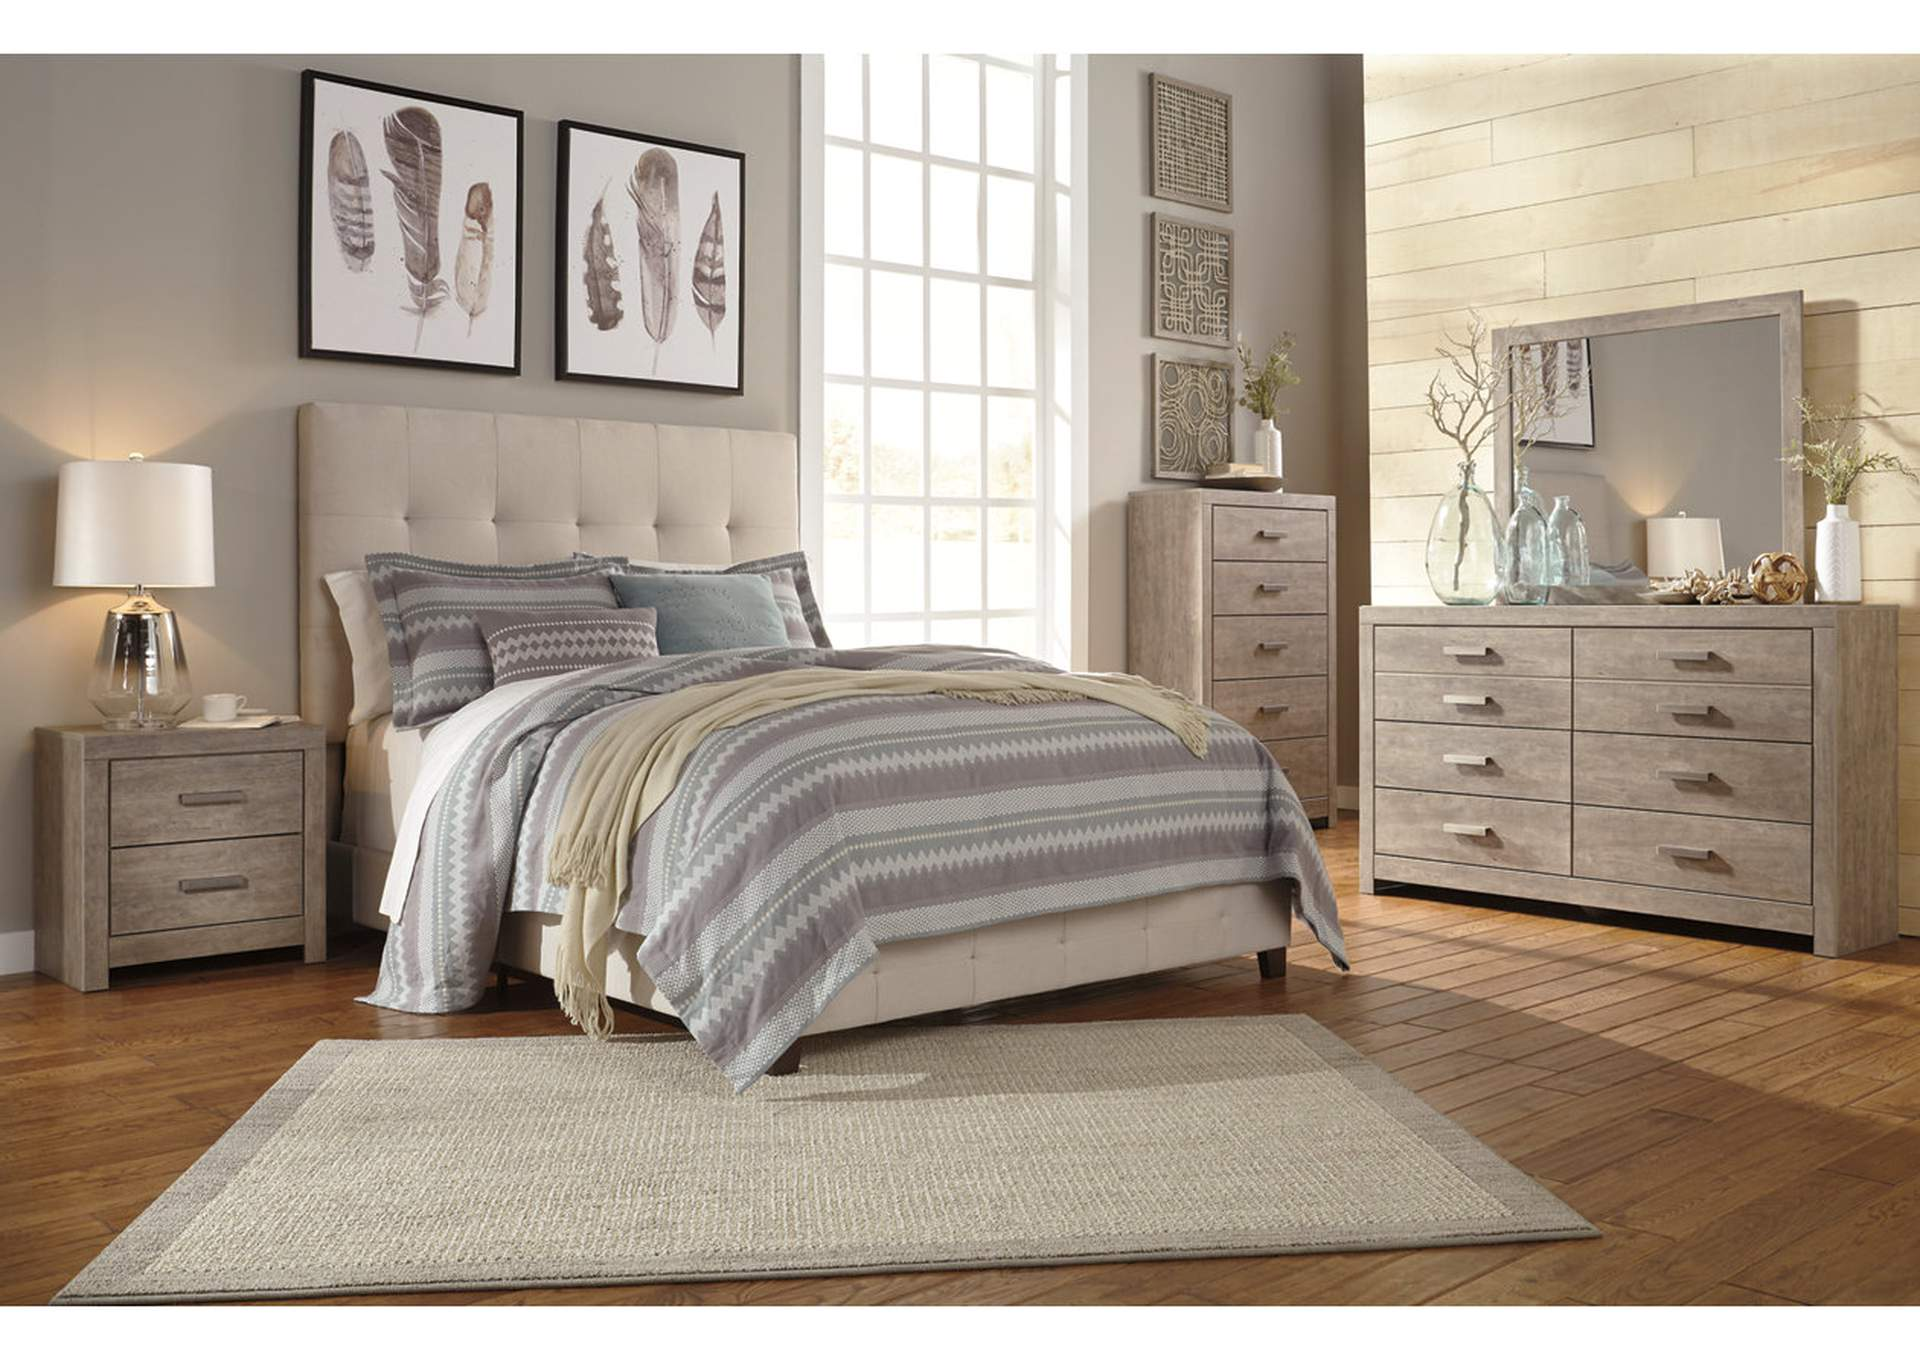 Dolante Beige Queen Upholstered Platform Bed,Signature Design By Ashley